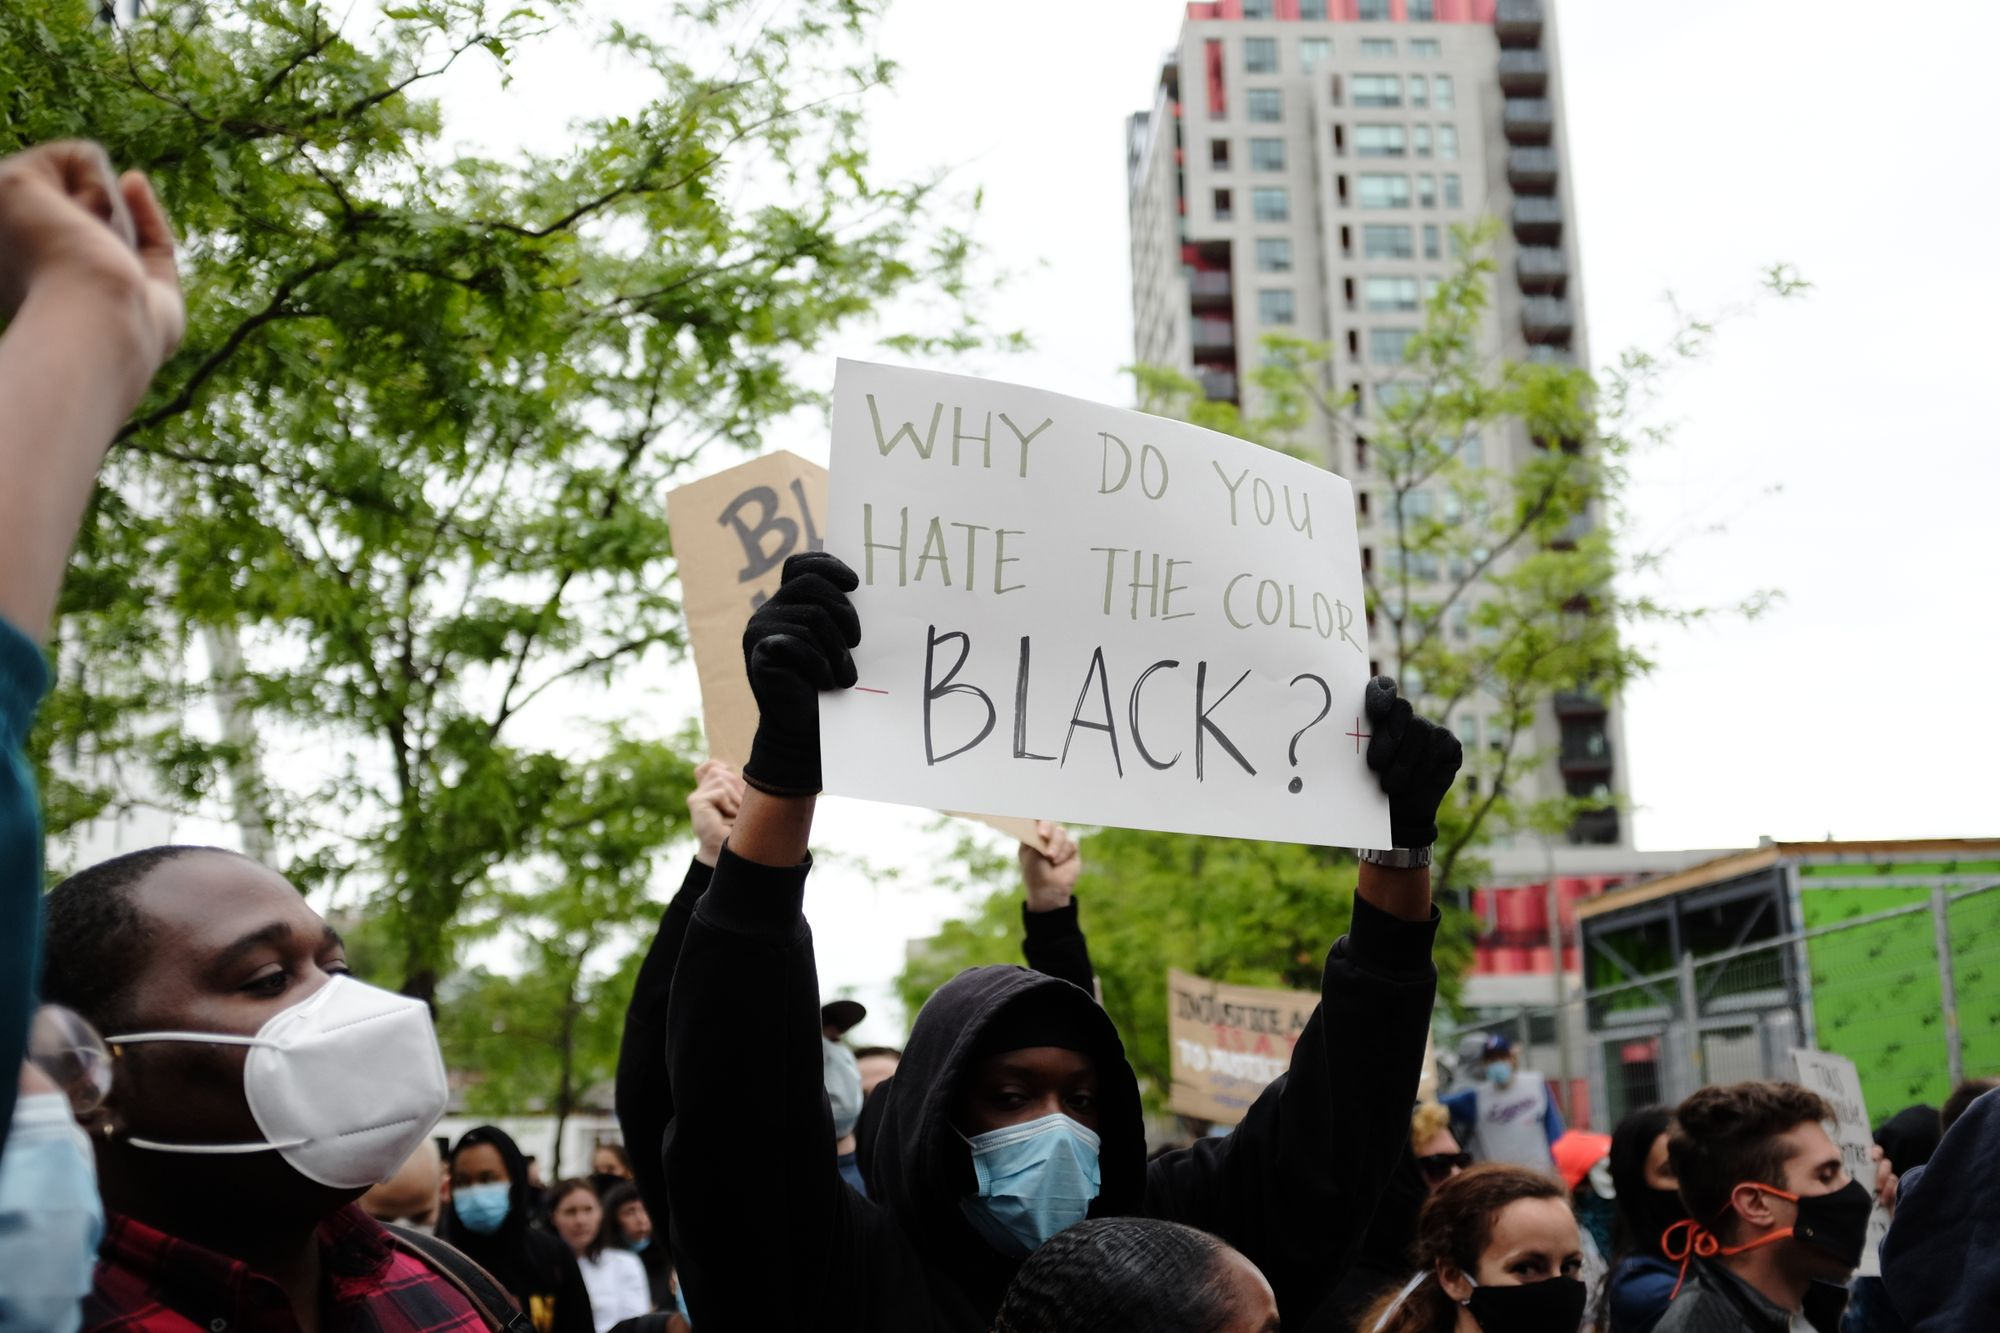 Montreal anti-racism protest soured by violent antifa thugs